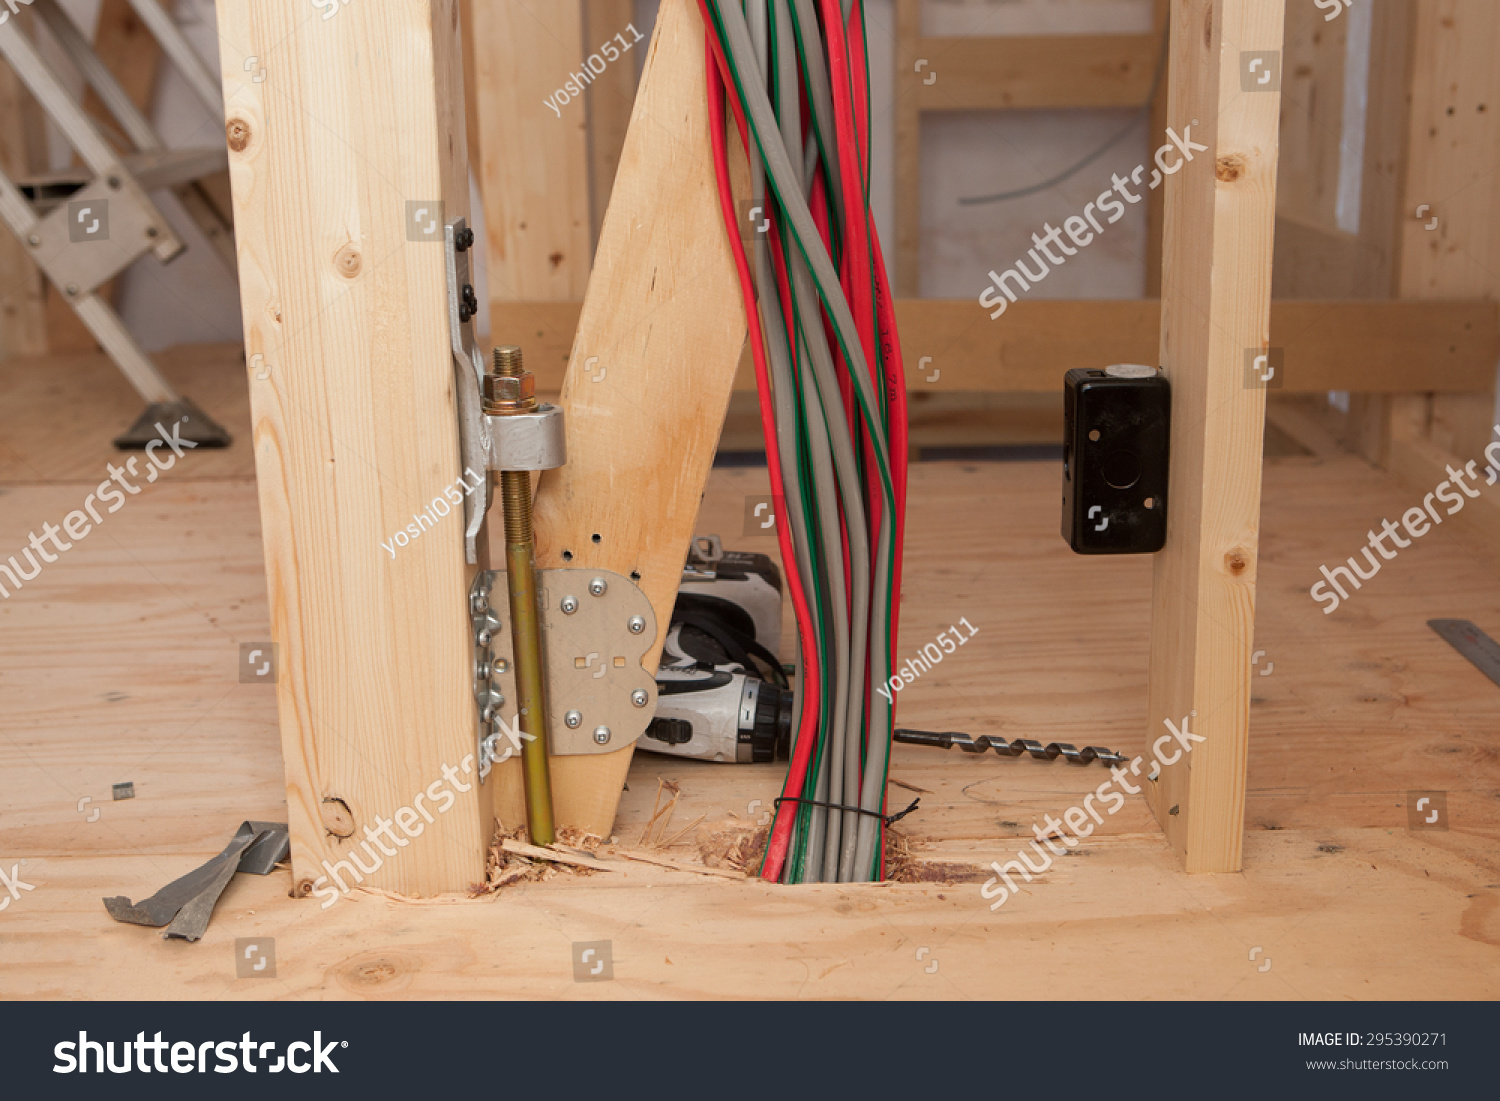 Electrical wiring work housing construction stock photo 295390271 electrical wiring work of housing construction greentooth Image collections